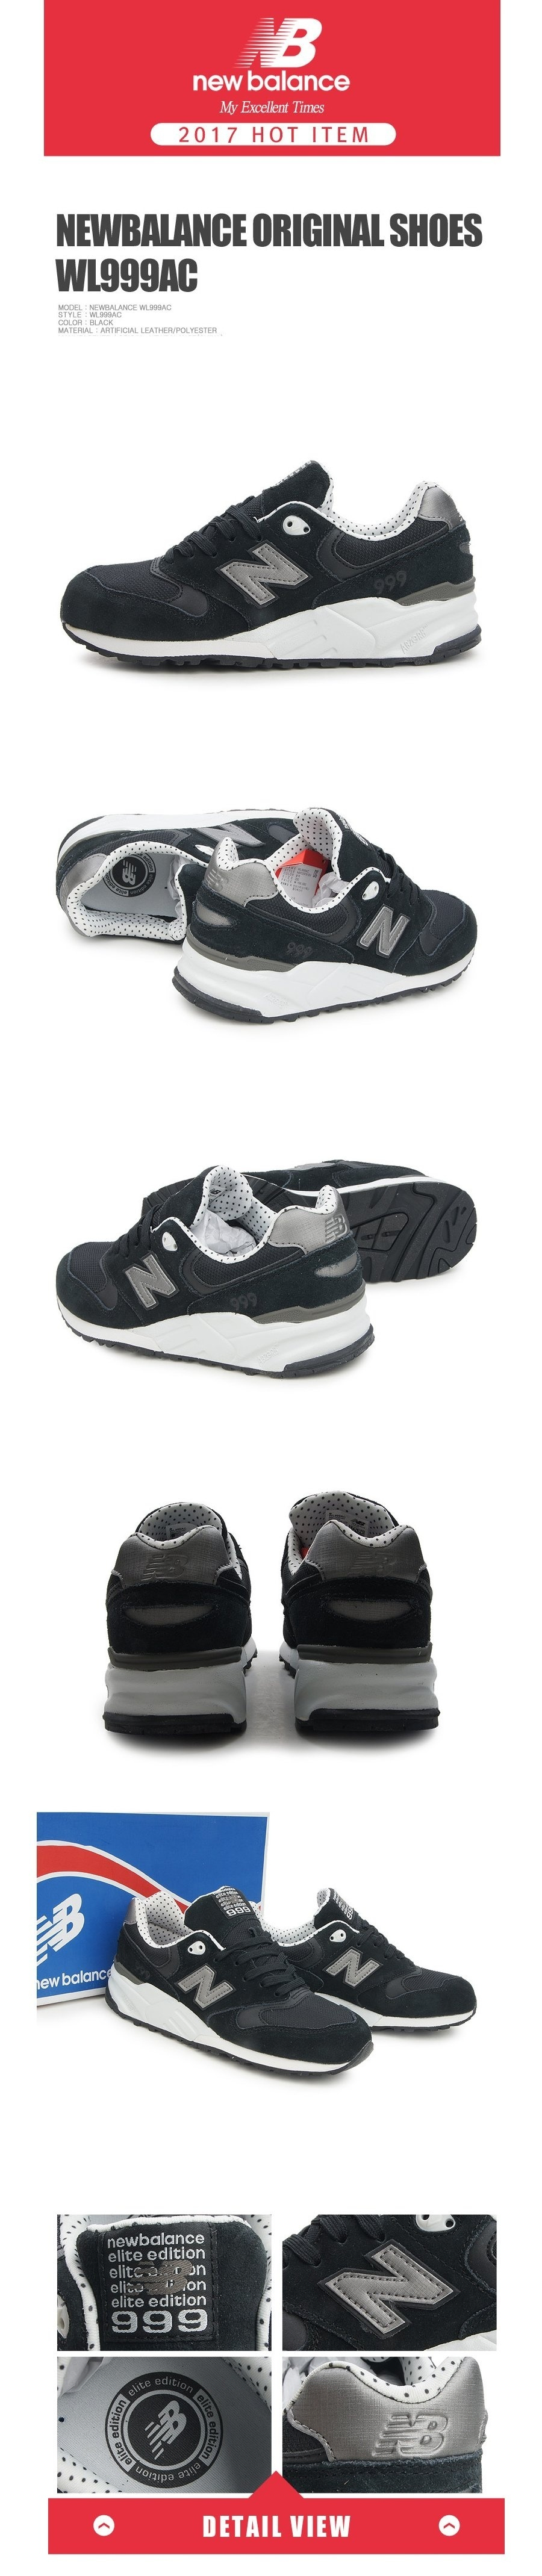 Specifications of New Balance 2017 New Original WL999AC Womens Sneakers ( Black) - intl b83bafe400